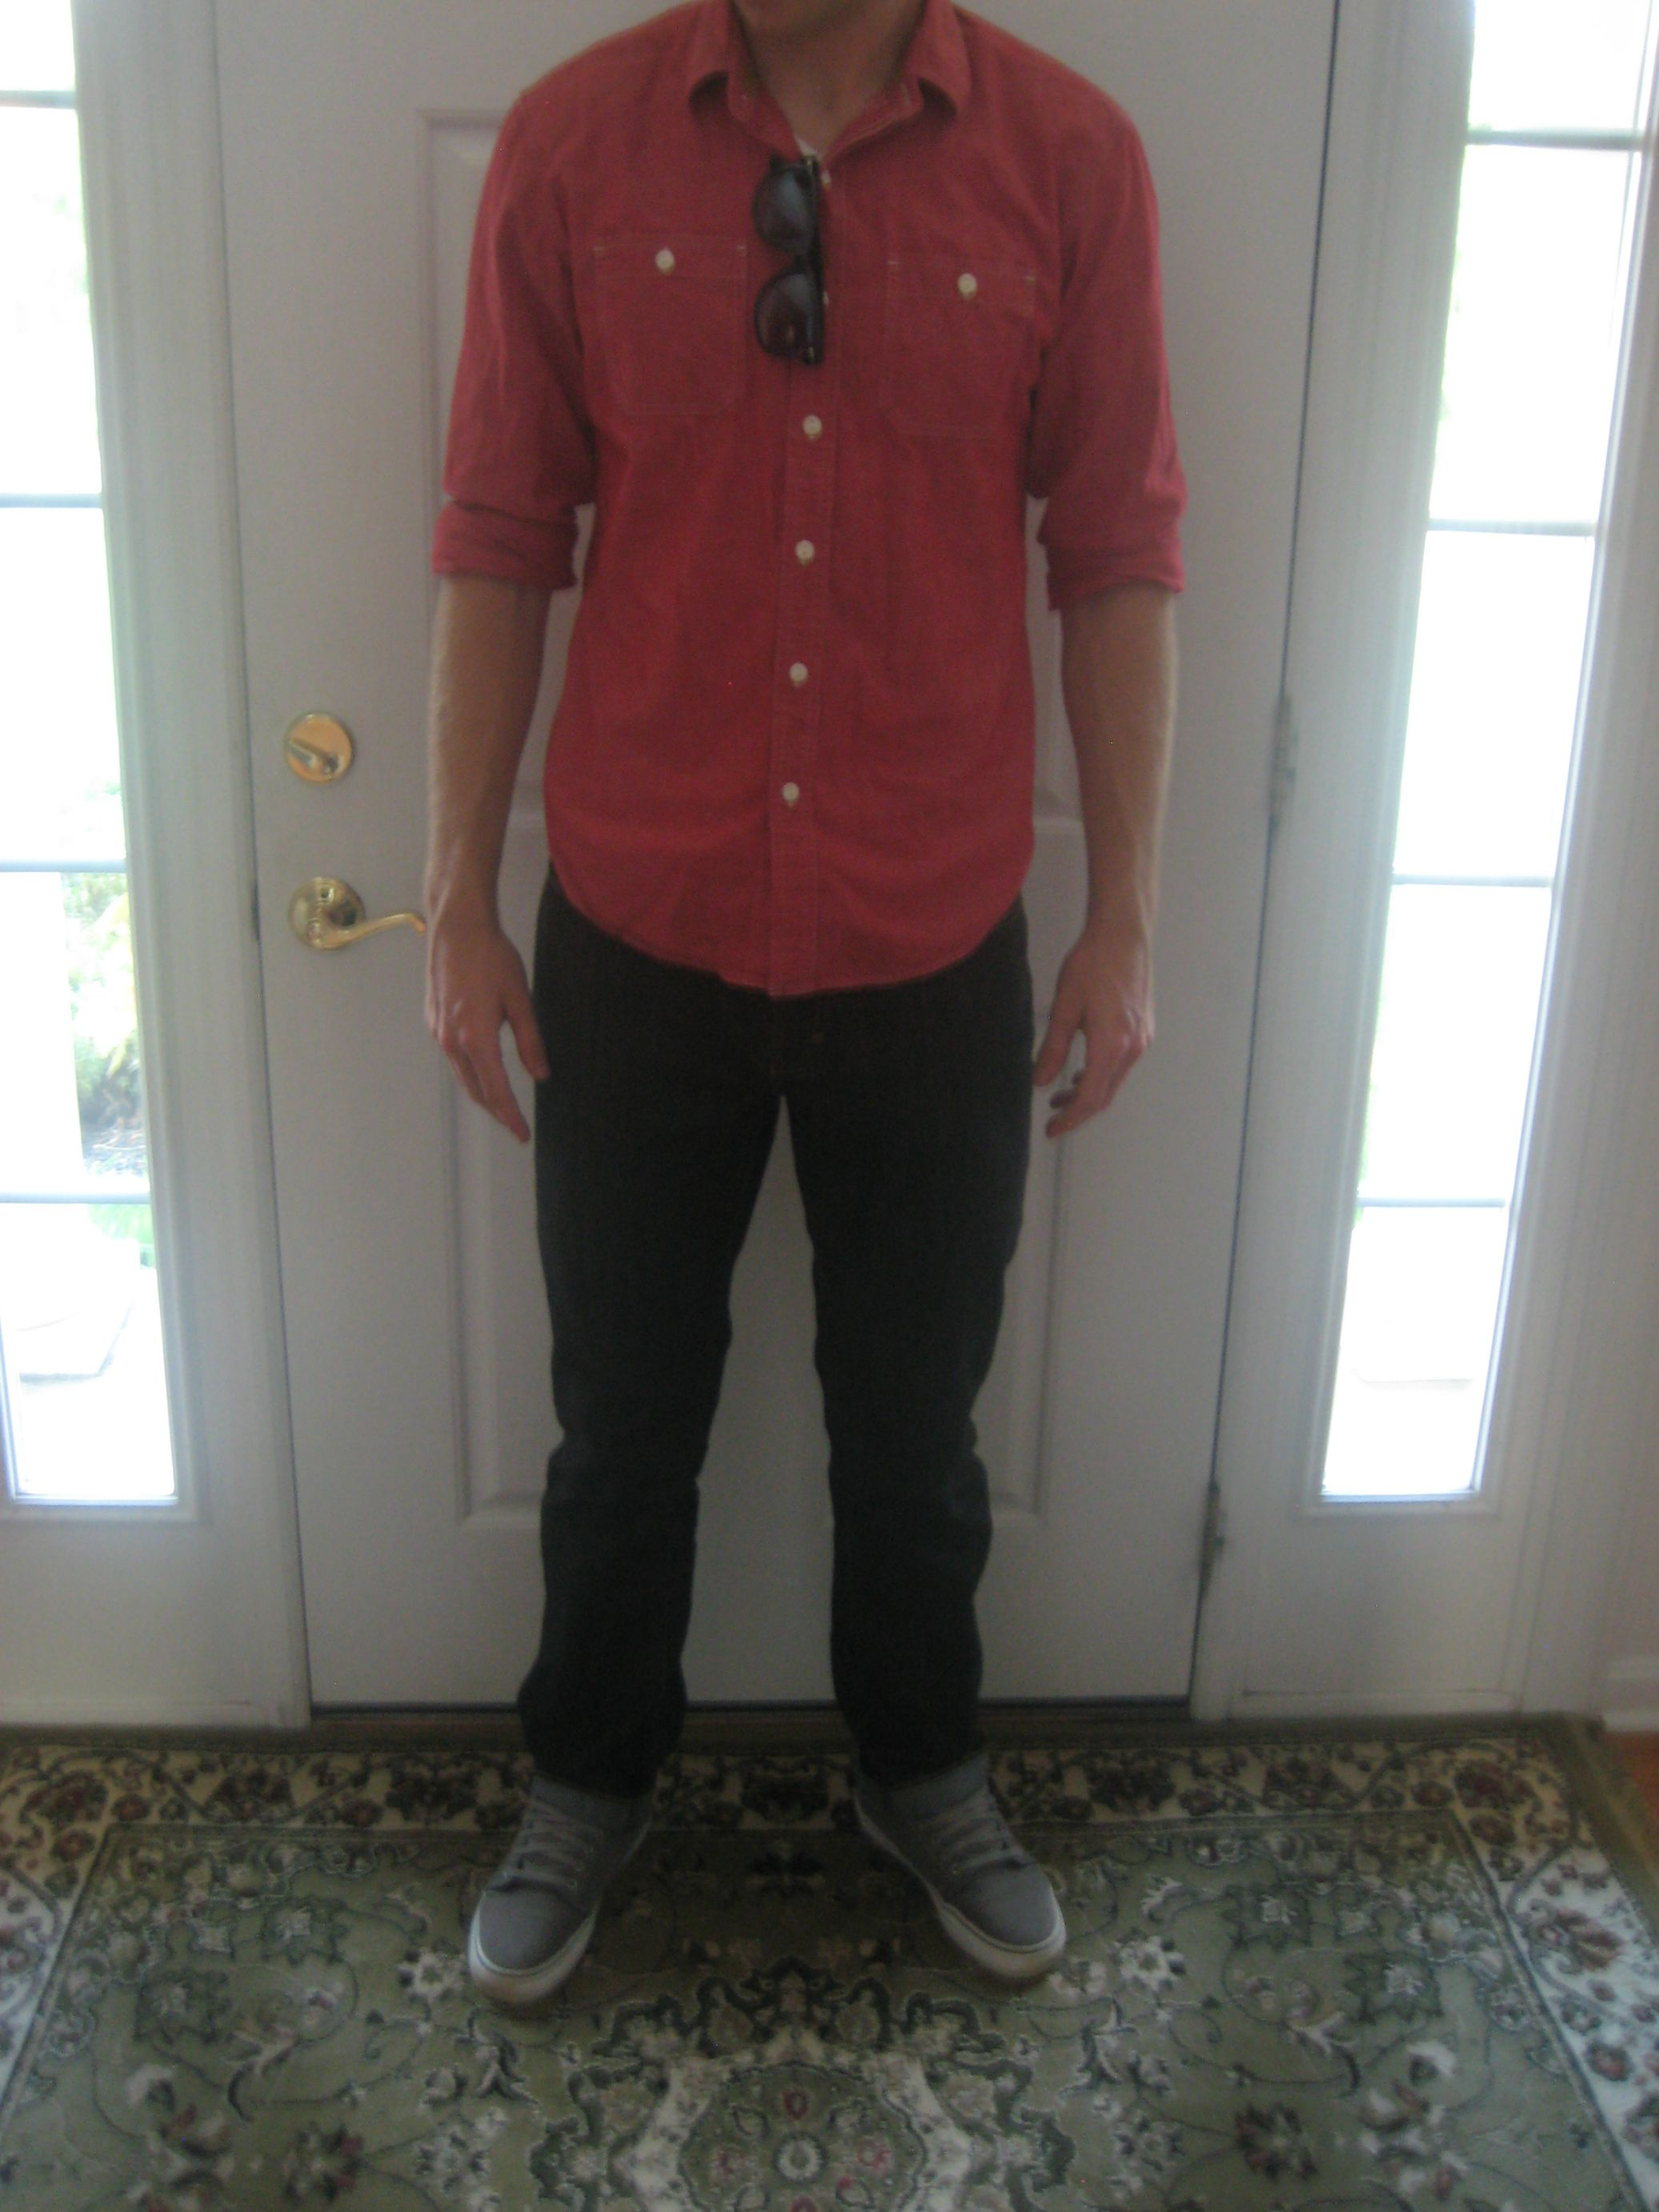 My first ever WAYWT post, taken close to four years ago. The shirt is too short, the pants are too tight at the knees, and there's some visible tightness in the chest.